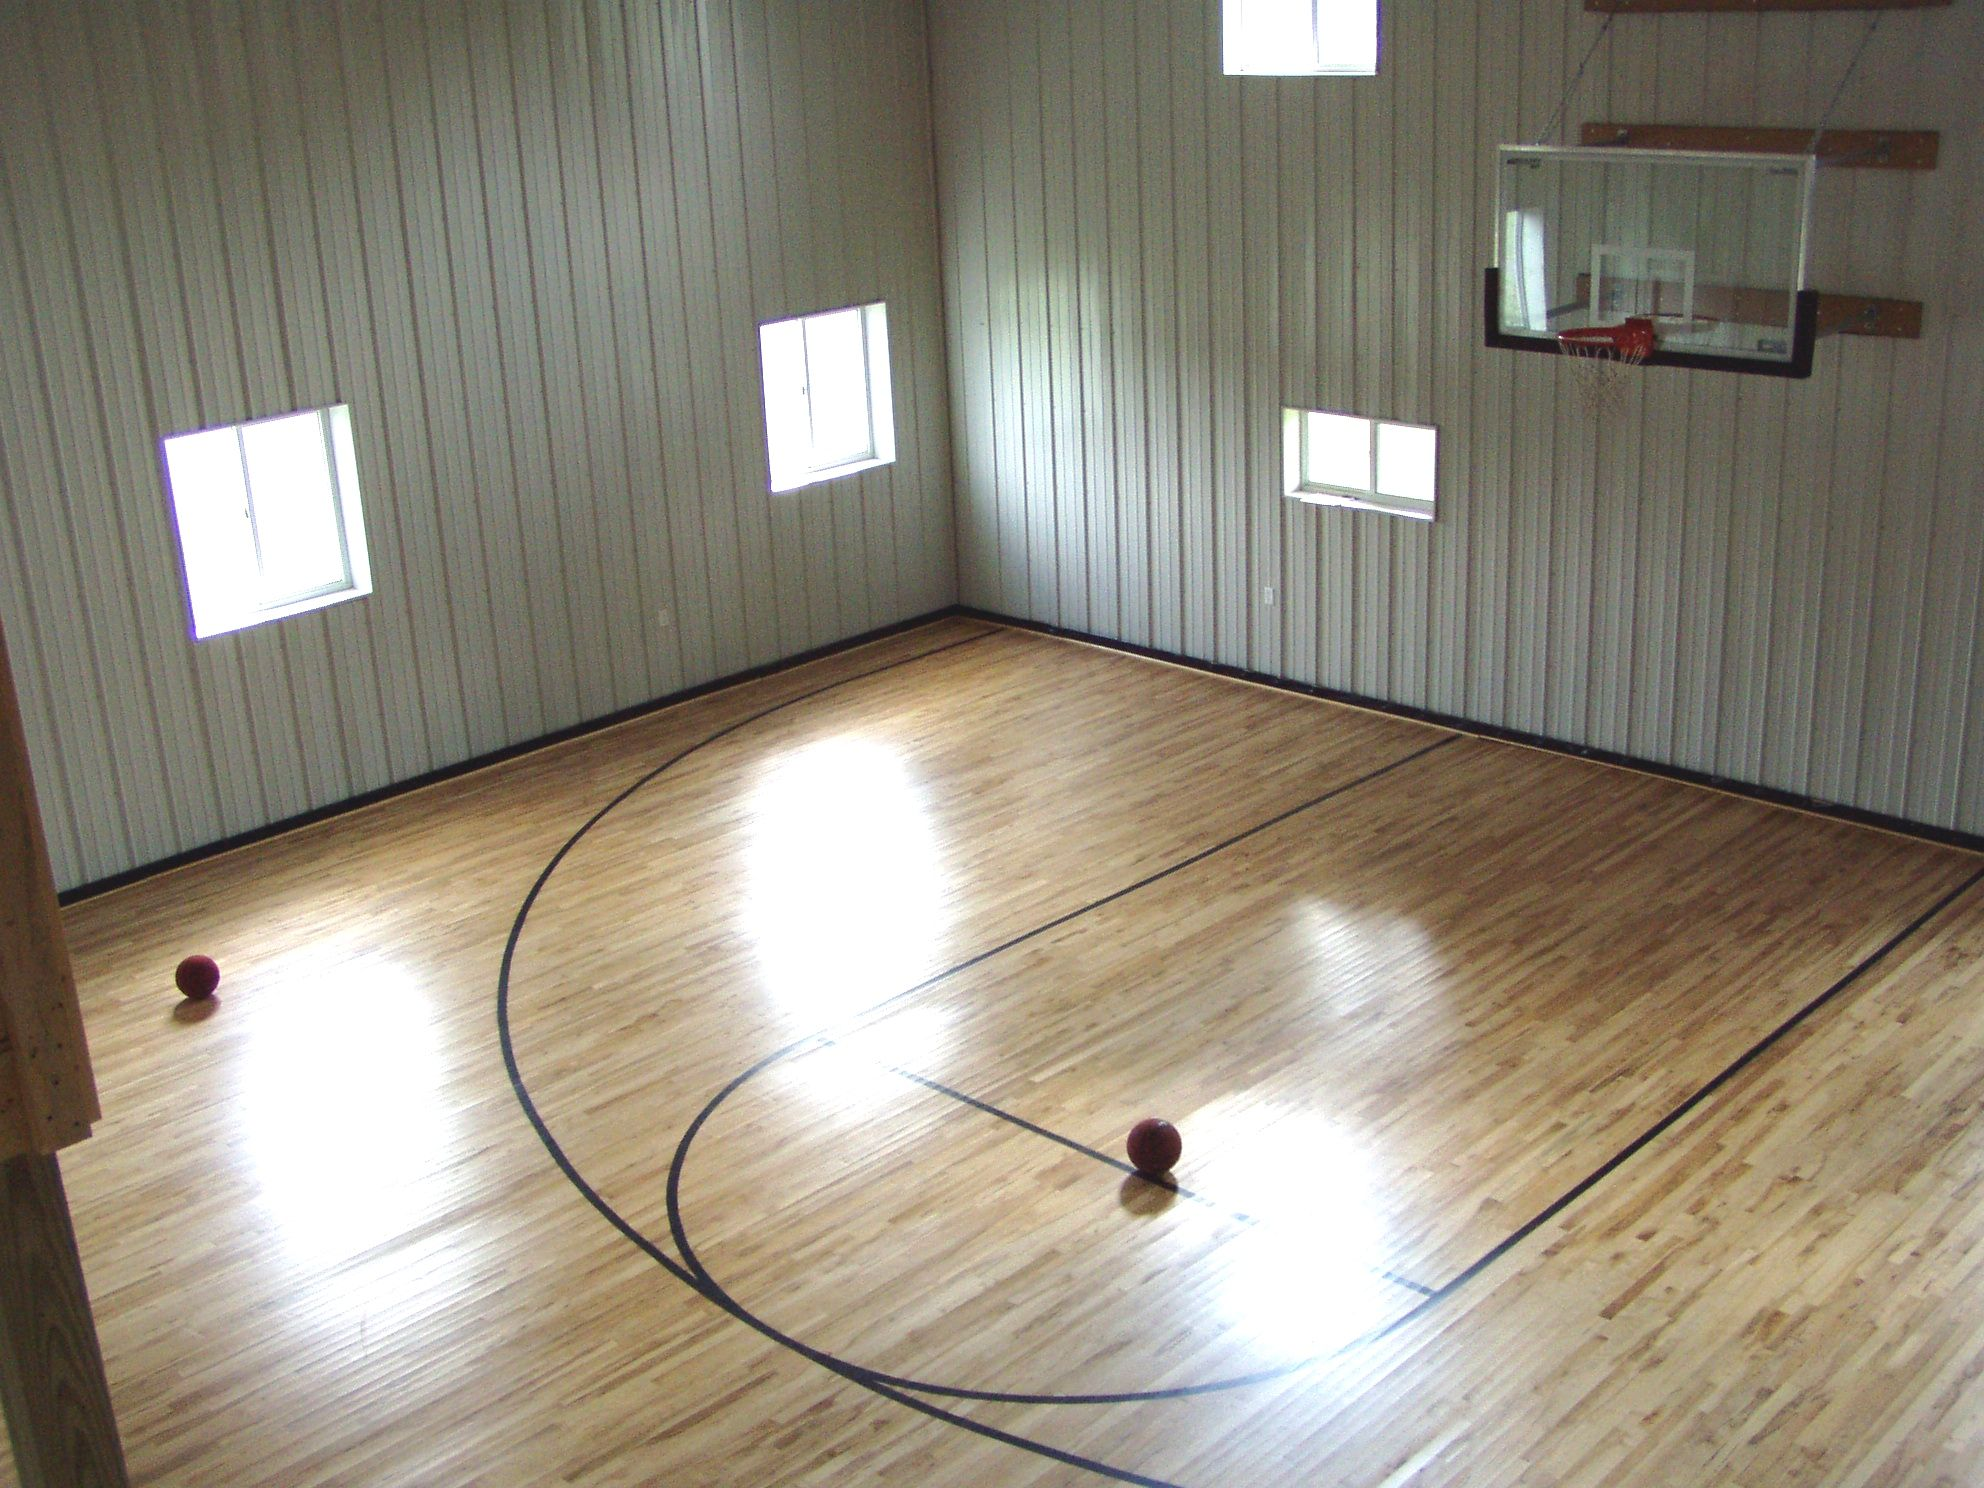 Insulated Lined Half Court Basketball For The Kids Both Young And